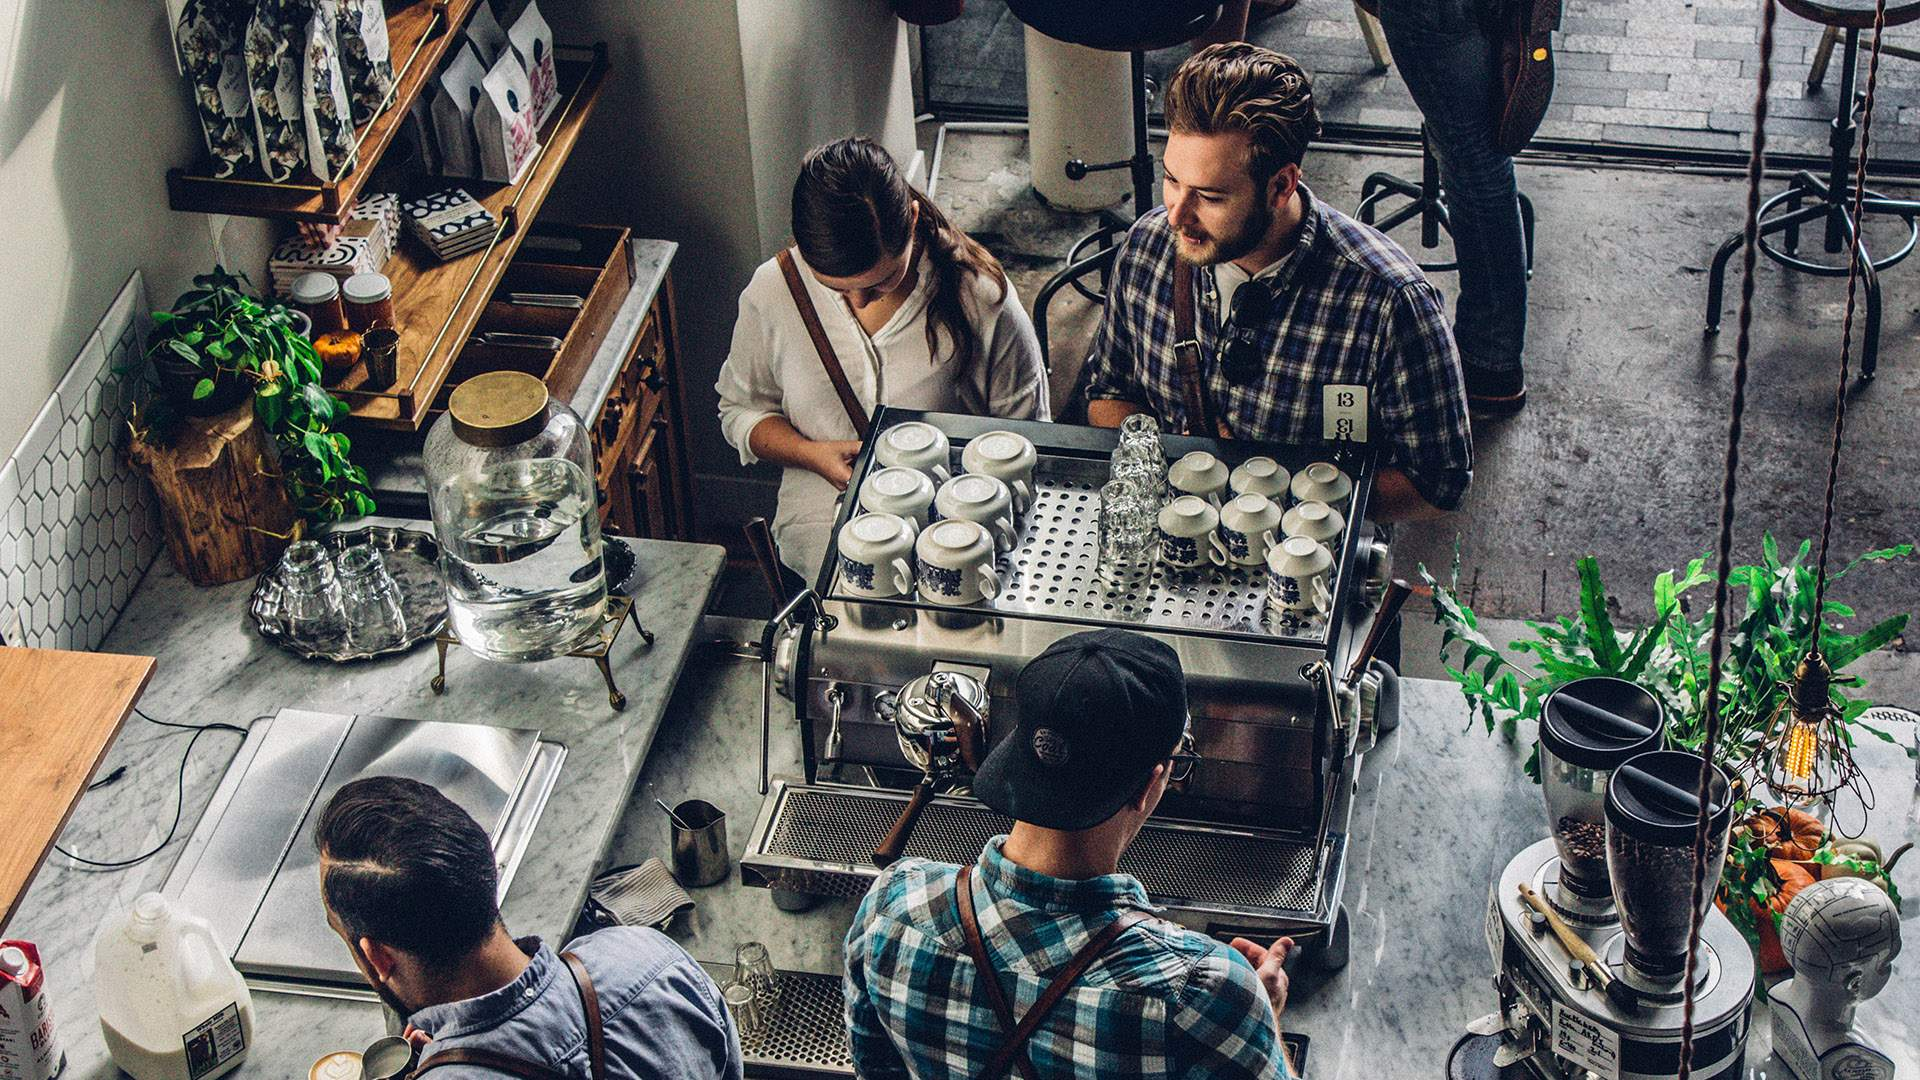 This Aussie-Made Facial Recognition System Is Being Used to Take Coffee Orders Across the Country